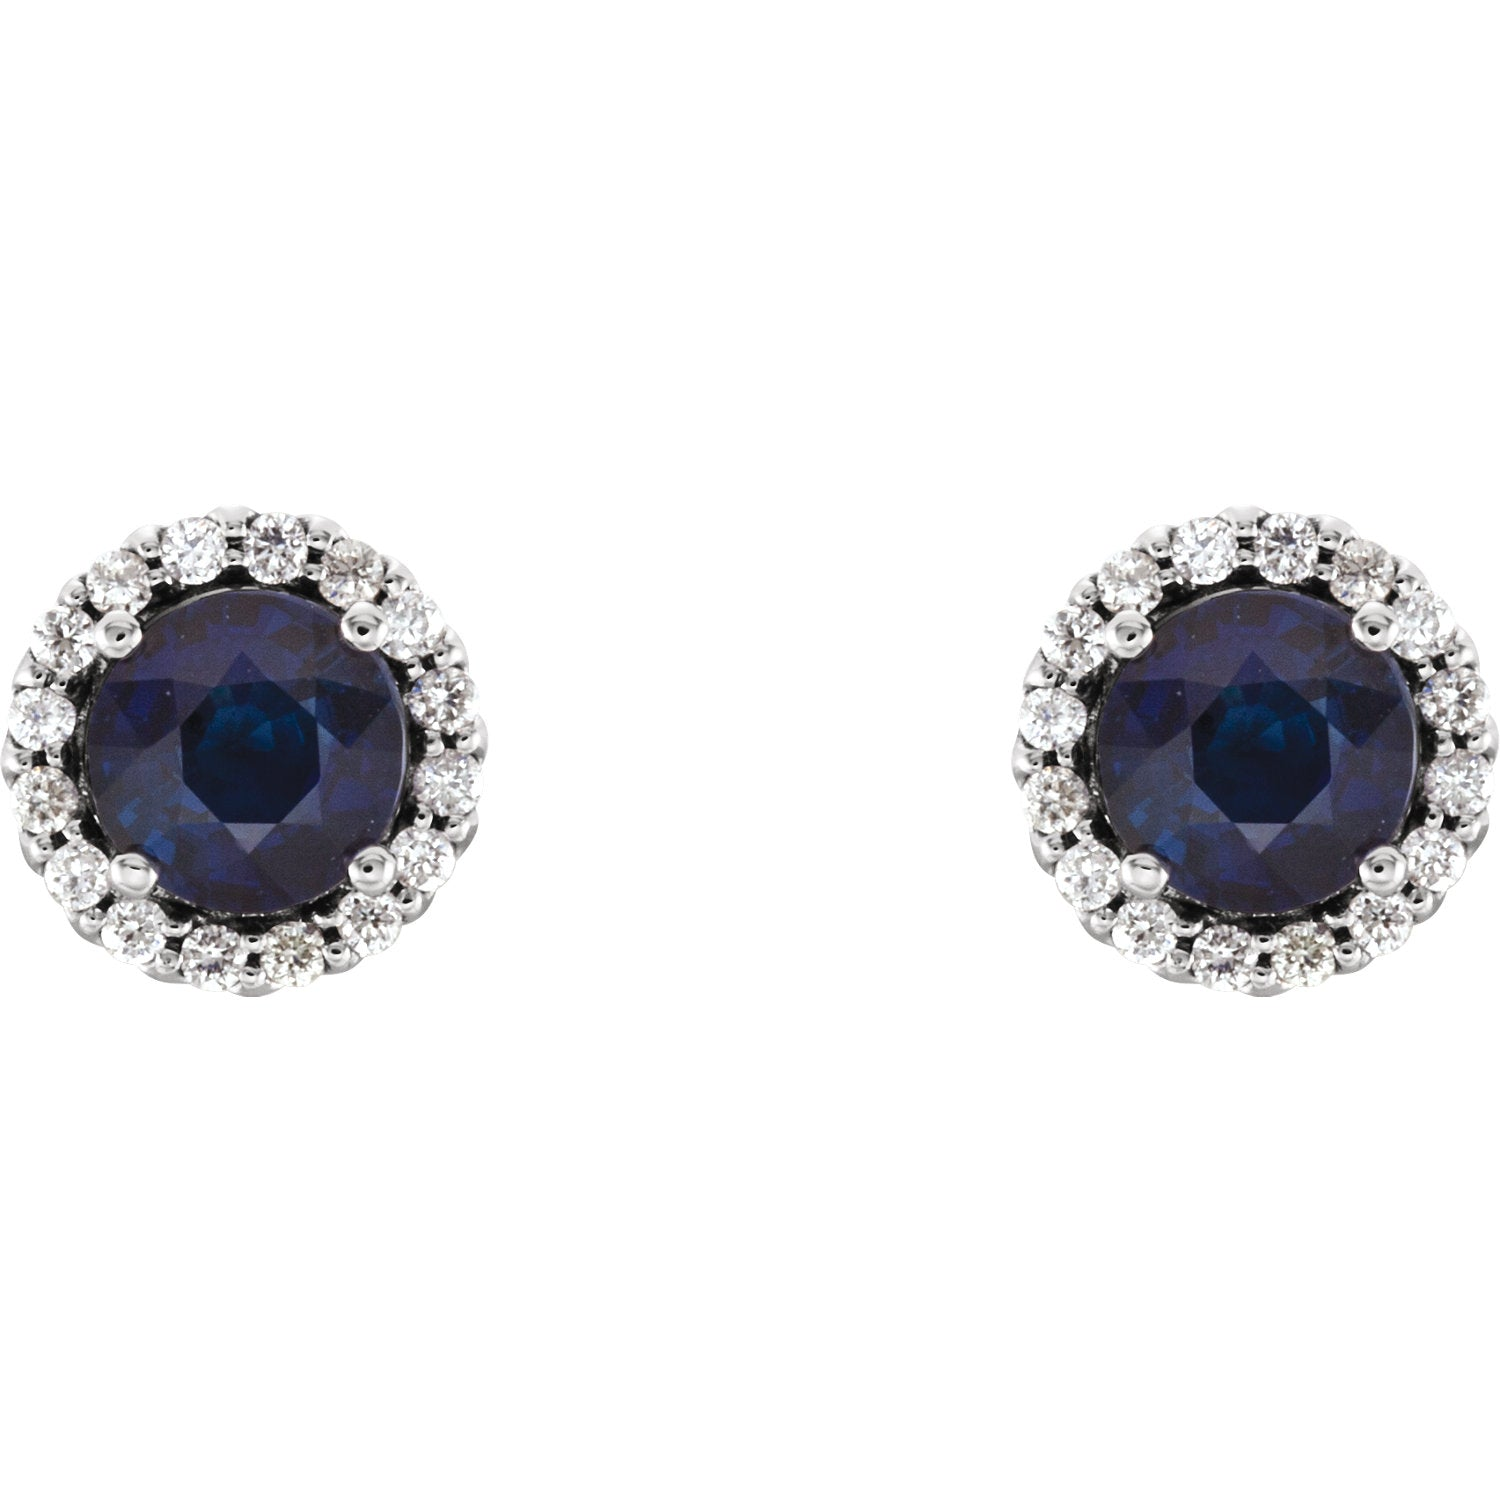 14K White Gold 5MM Blue Sapphire & 1 6 CTW Diamond Earrings Lew Gold